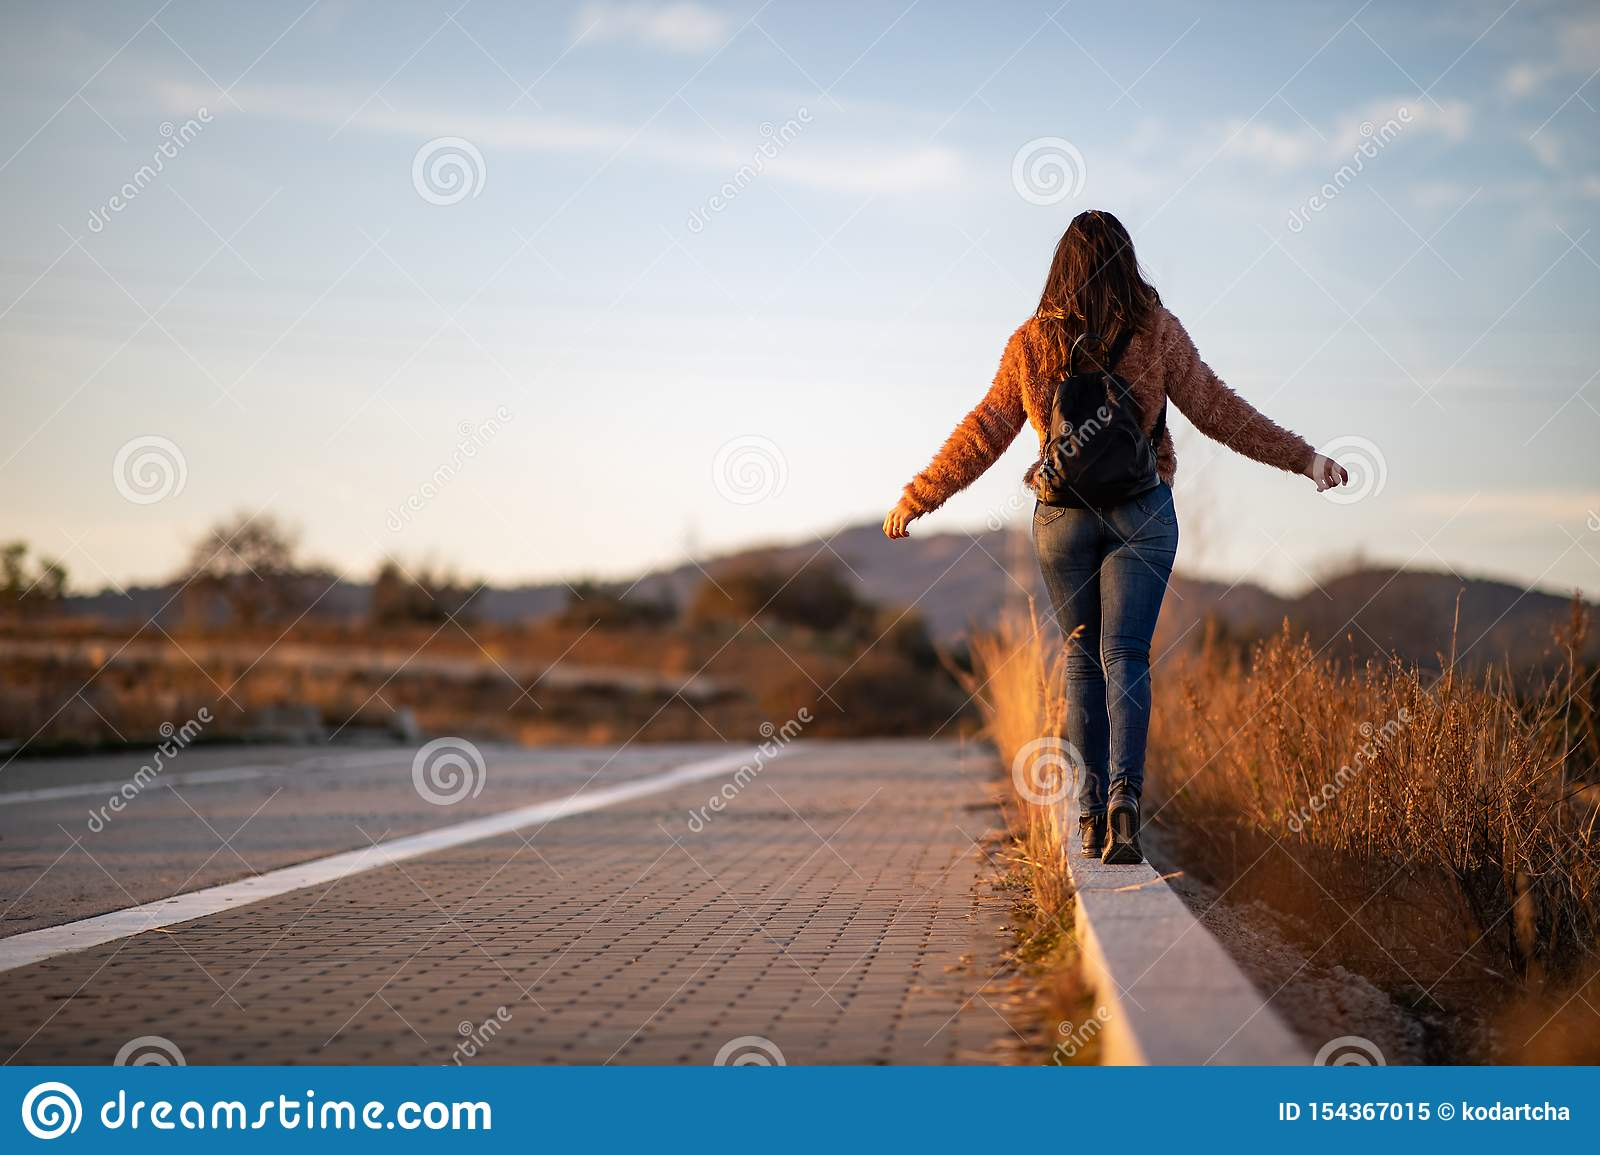 Beautiful woman walking and balancing on street curb or curbstone during sunset